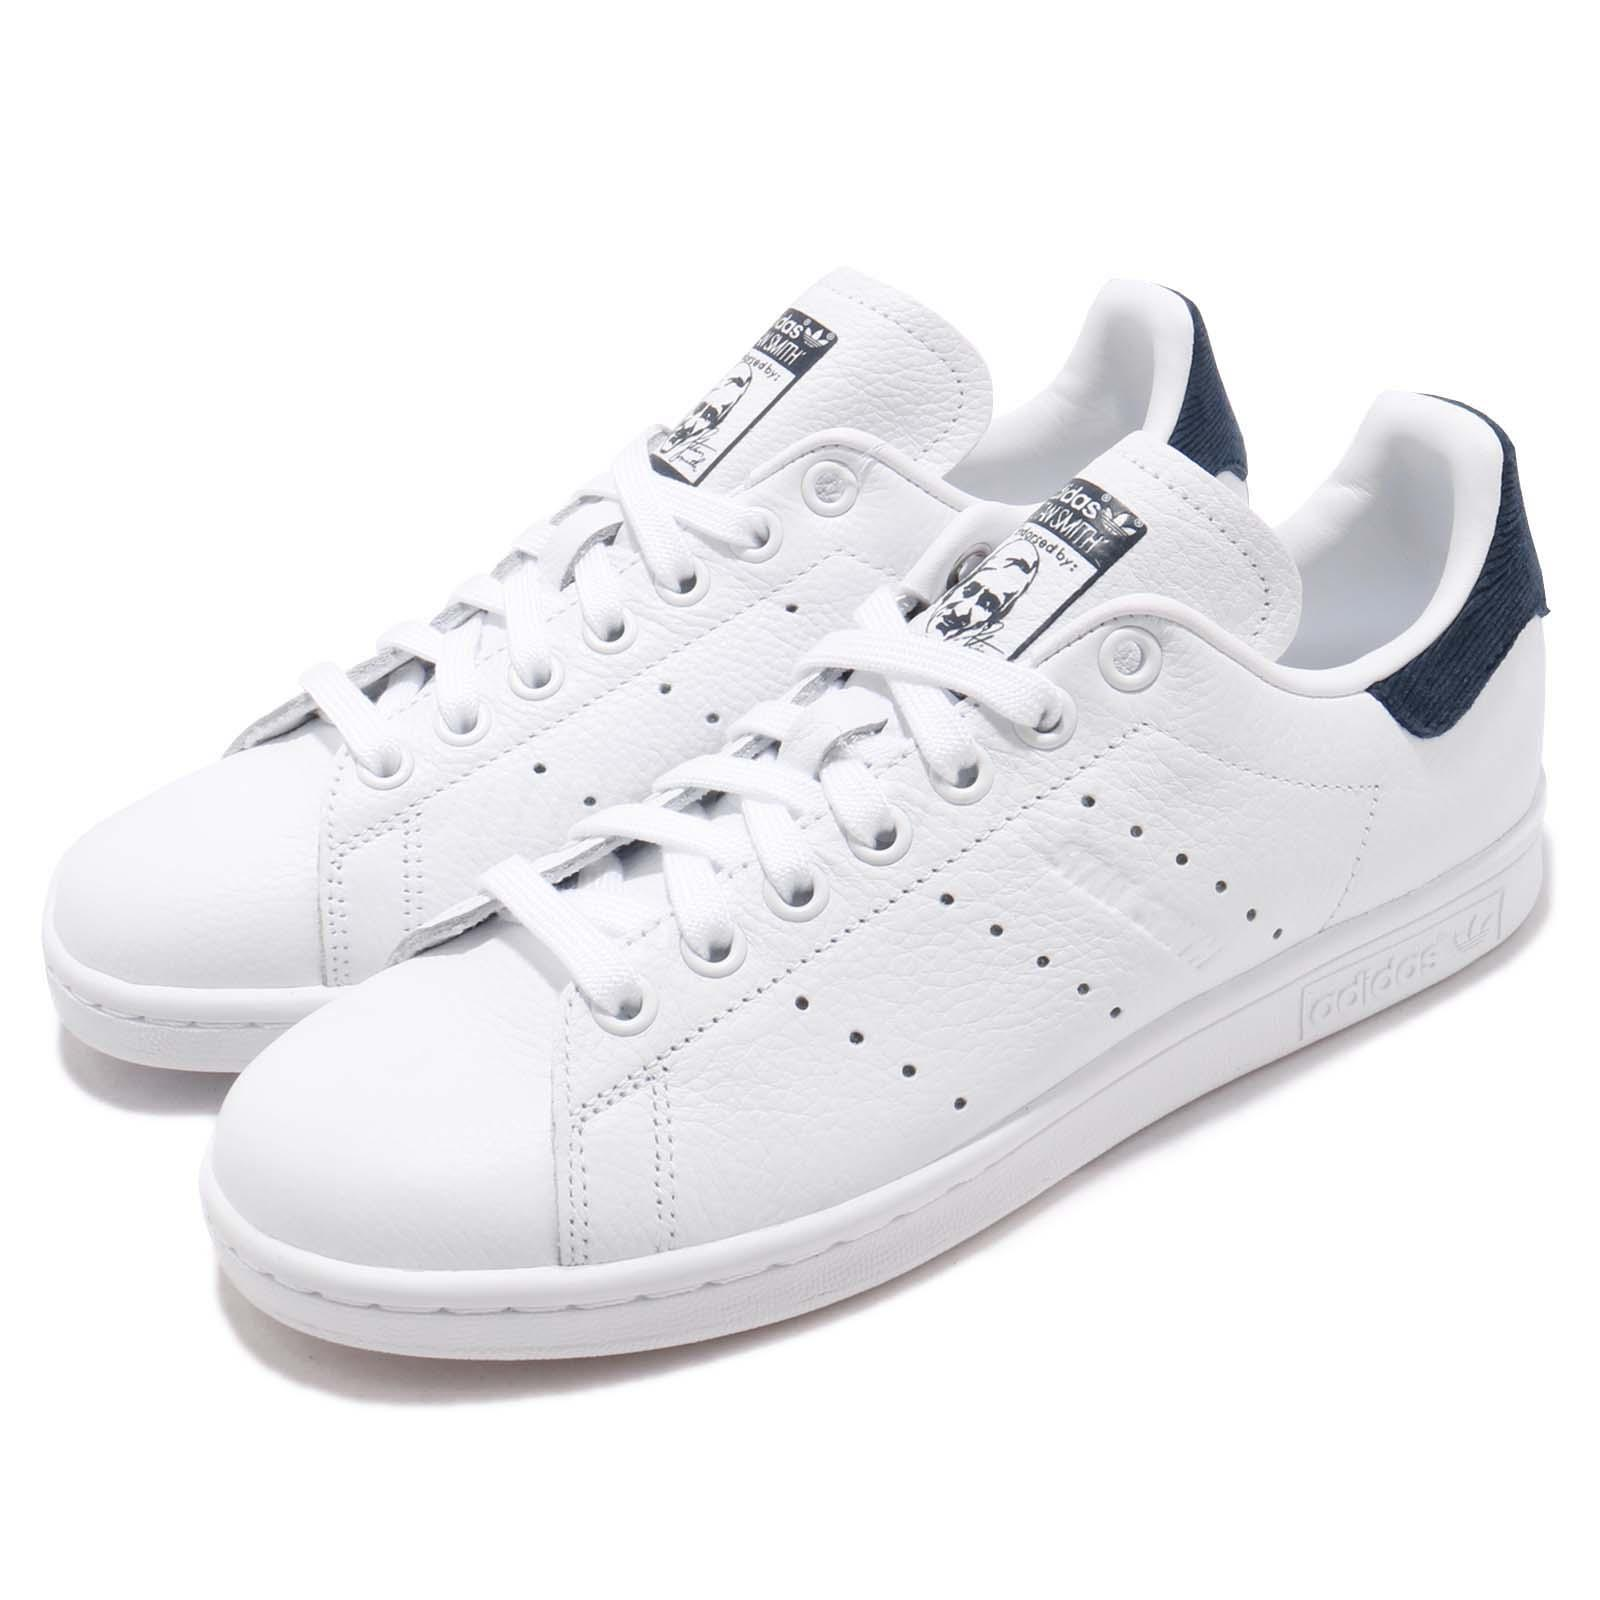 new products 8448d 80d0b Details about adidas Originals Stan Smith W White Navy Women Lifestyle  Casual Shoes B41626